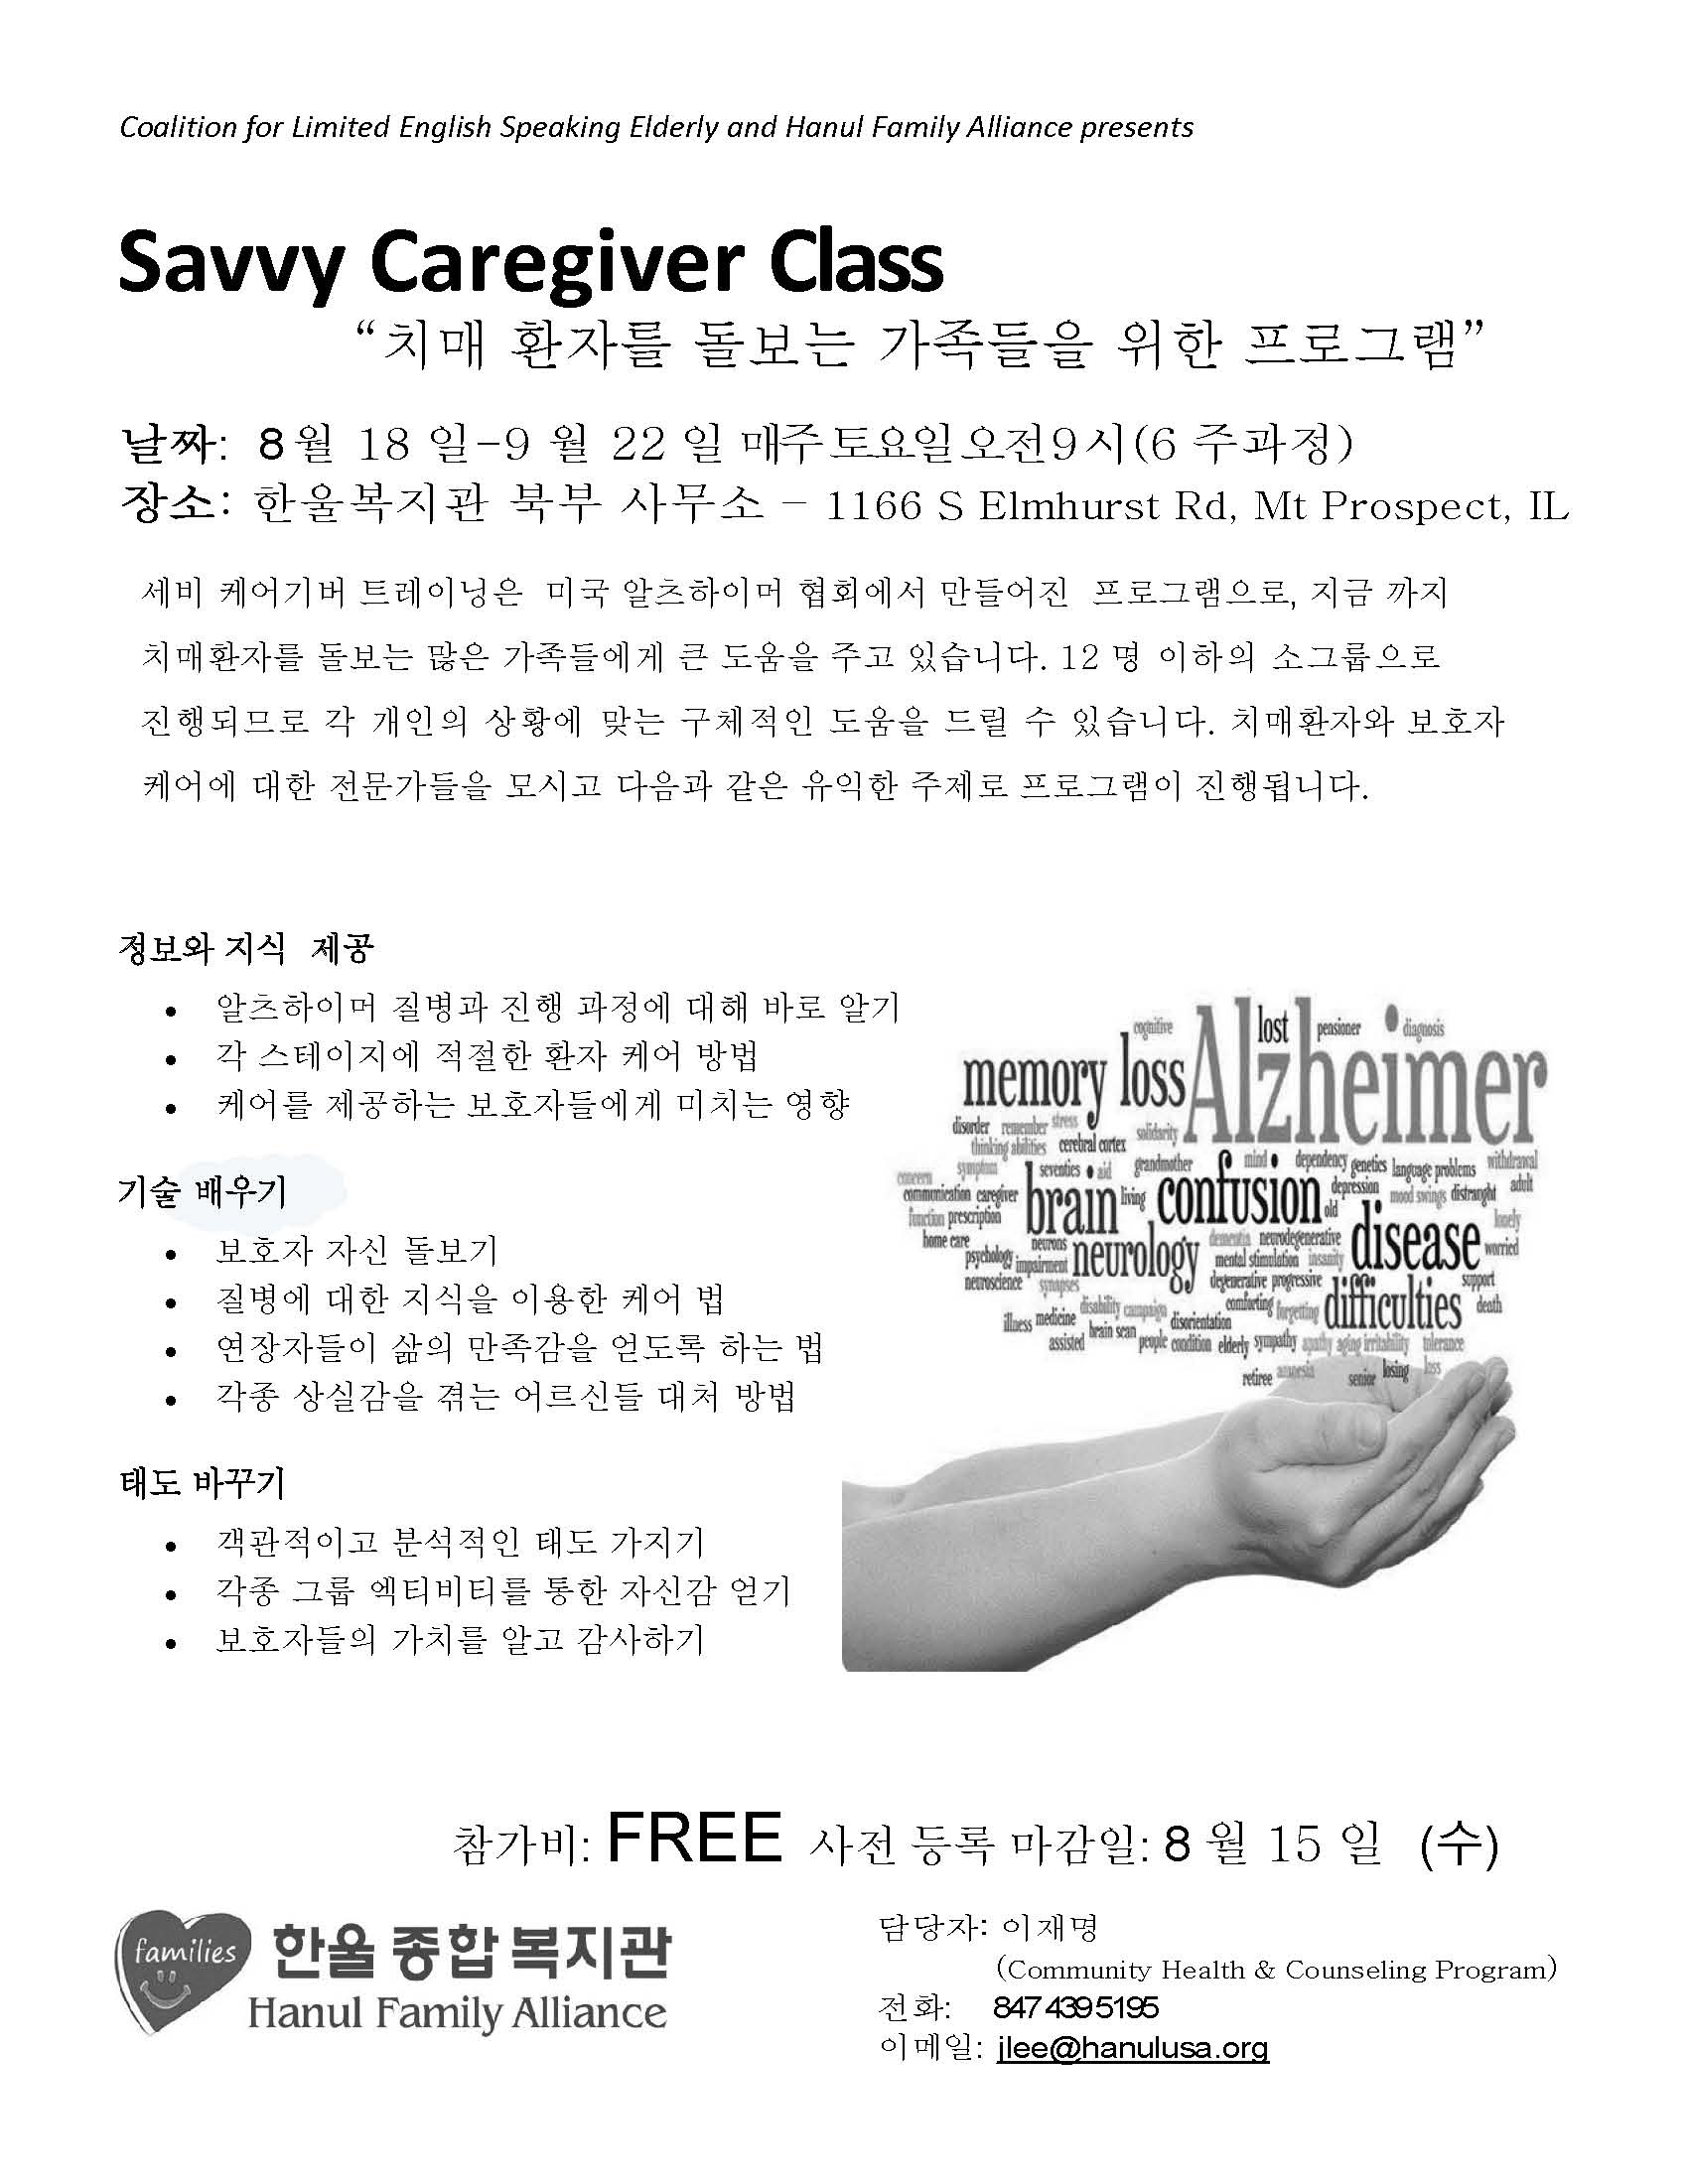 Savvy Caregiver Flyer - 2nd for FY18 - Korean (1).jpg